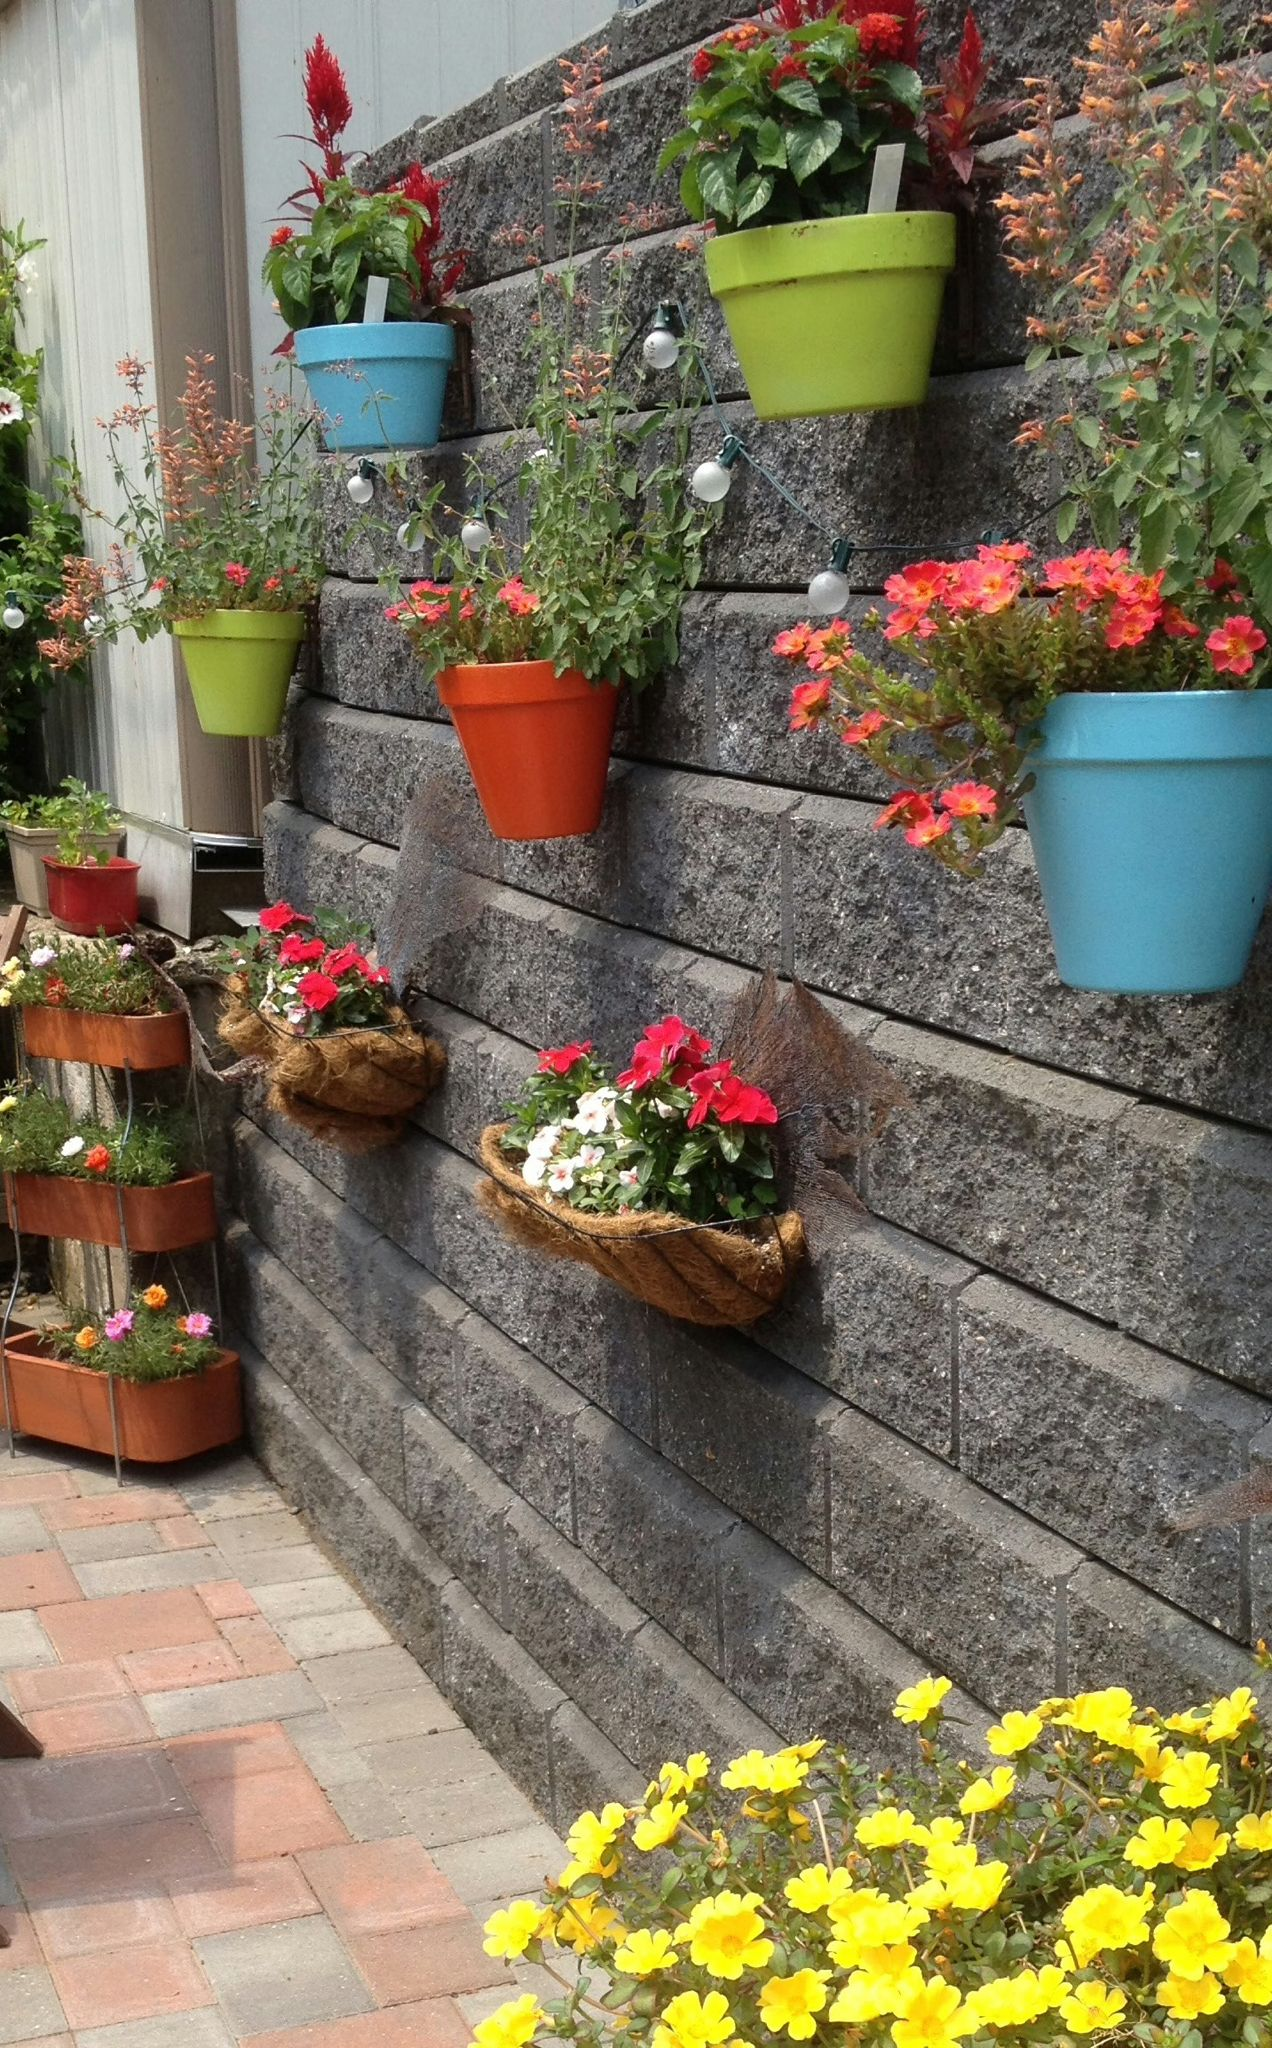 Painted Clay Pots Secured To Keystone Wall With Hangapot Hangers From Philadelphia Flower Show Customers Jardim Horta Ideias